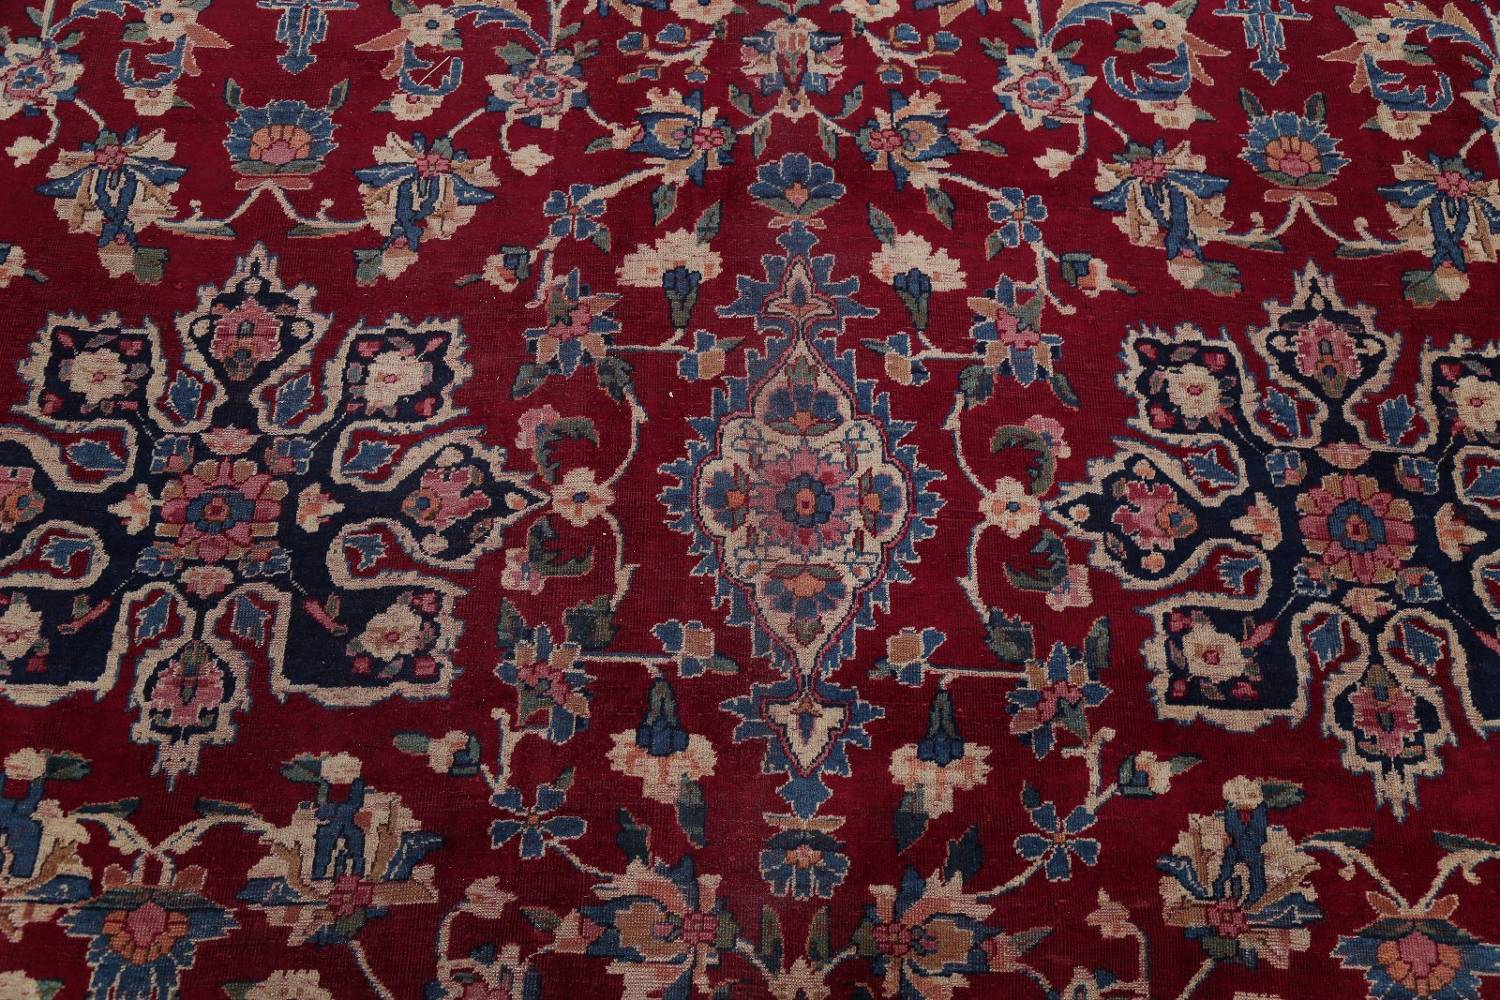 All-Over Floral 11x16 Yazd Persian Area Rug image 13